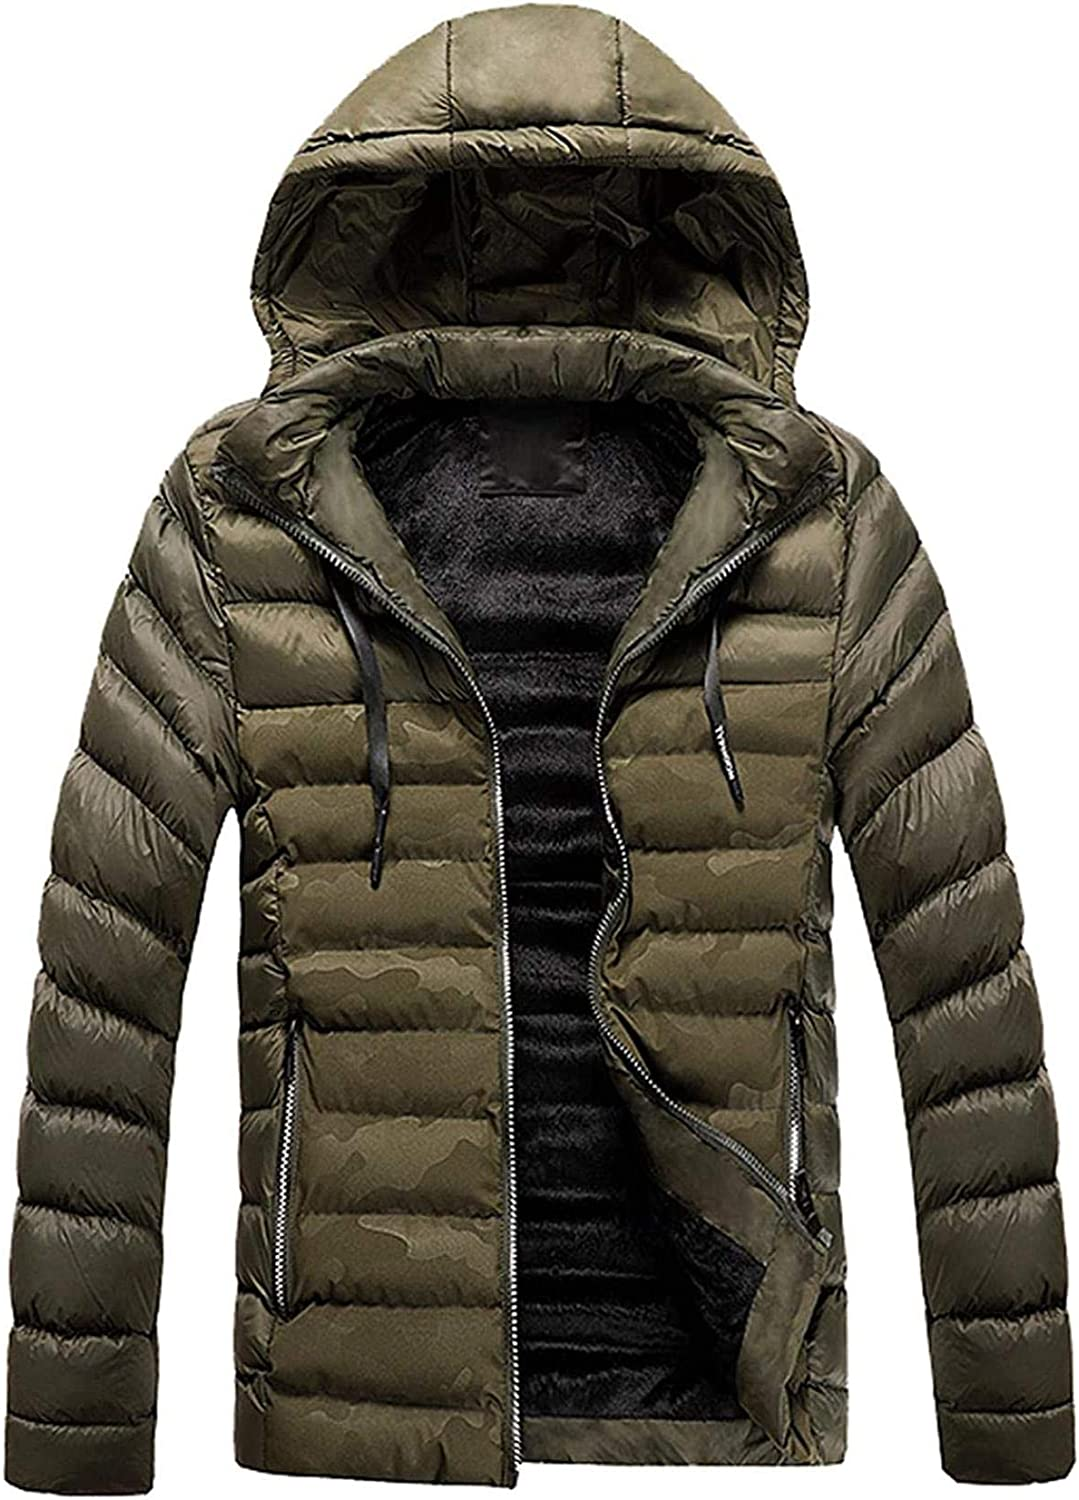 Mens Winter Warm Hooded Softshell for Windproof Soft Coat Shell Jacket Waterproof Ski Snow Raincoat with Removable Hood